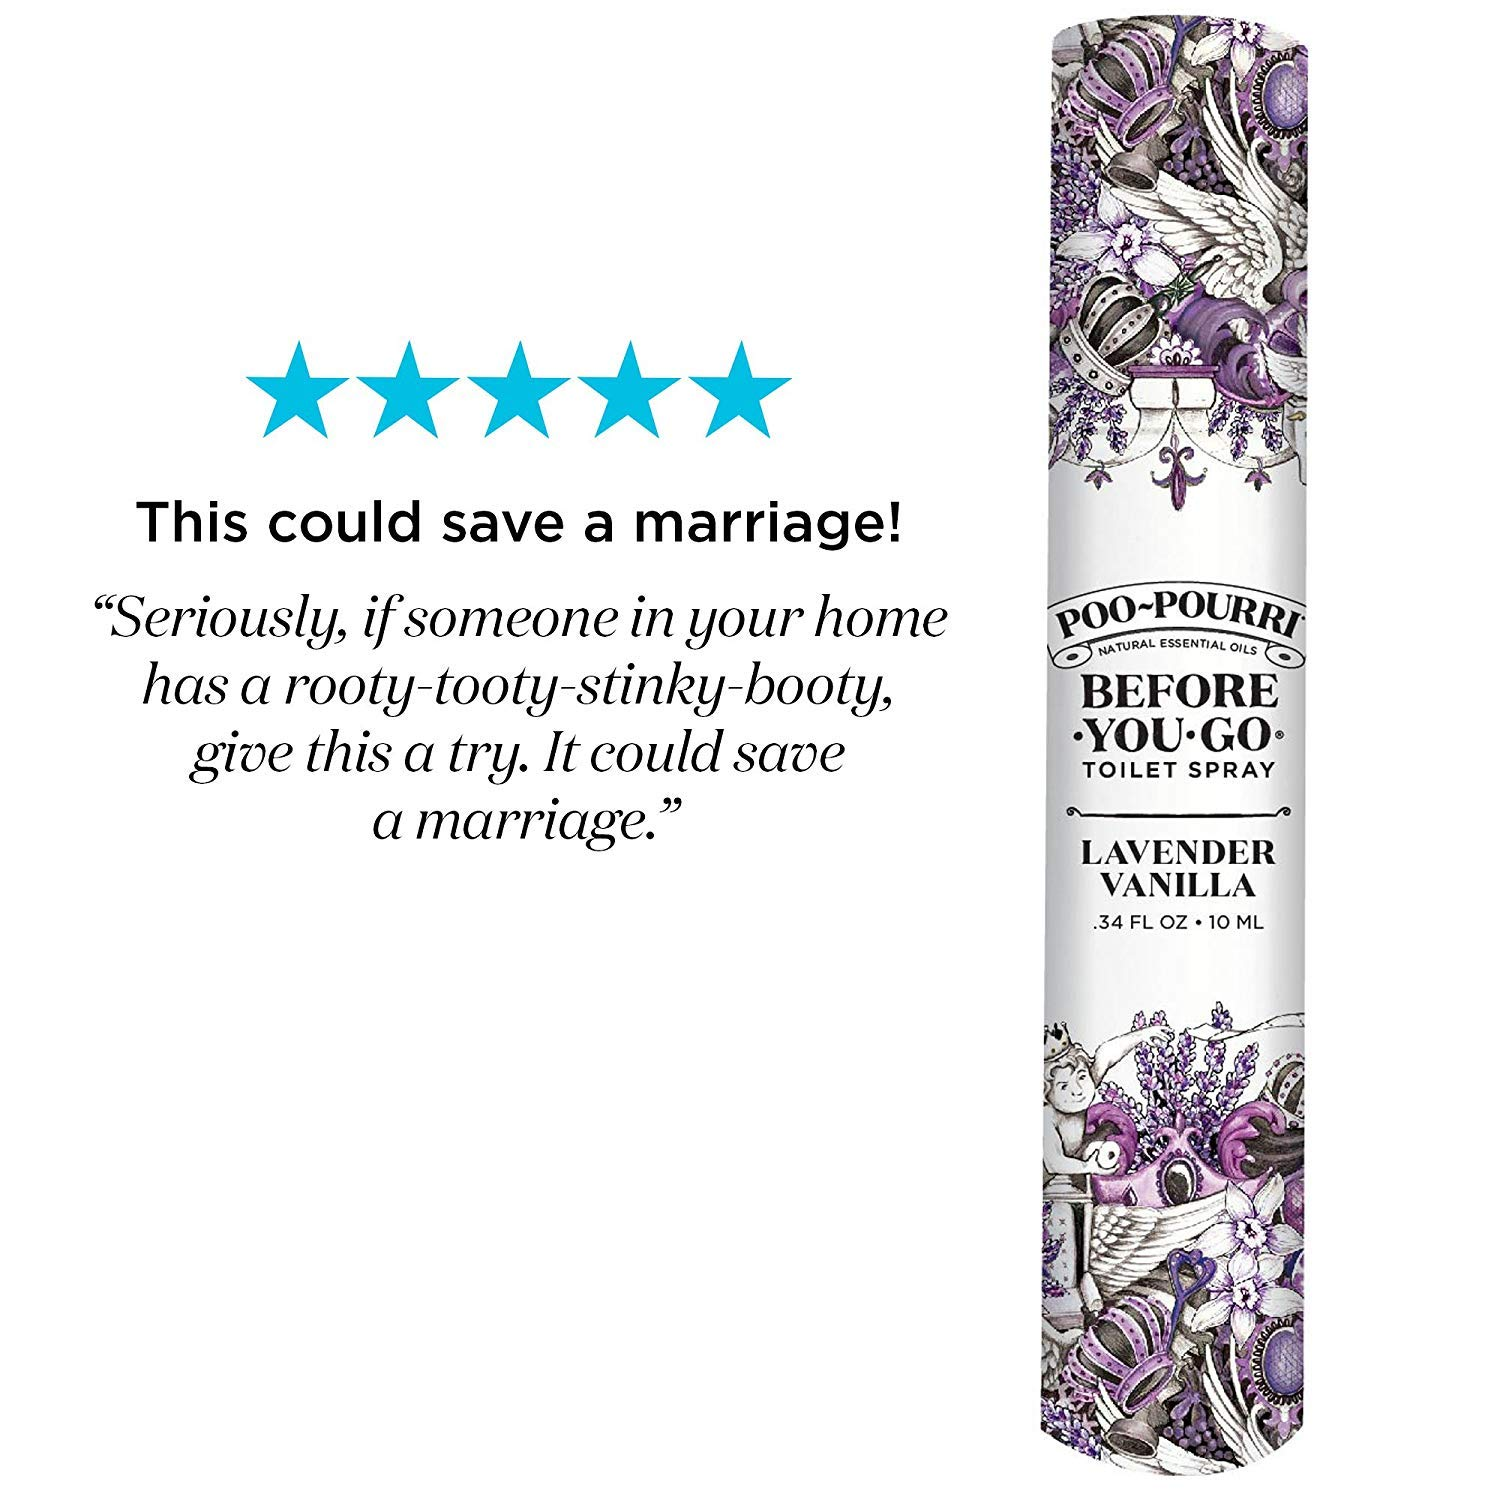 Poo-Pourri Travel Size 10mL - (2) Original Scent, (2) Lavender Vanilla Scent and Tropical Hibiscus 1.4 Ounce Bottle with Bottle Tag Included by Poo-Pourri (Image #5)